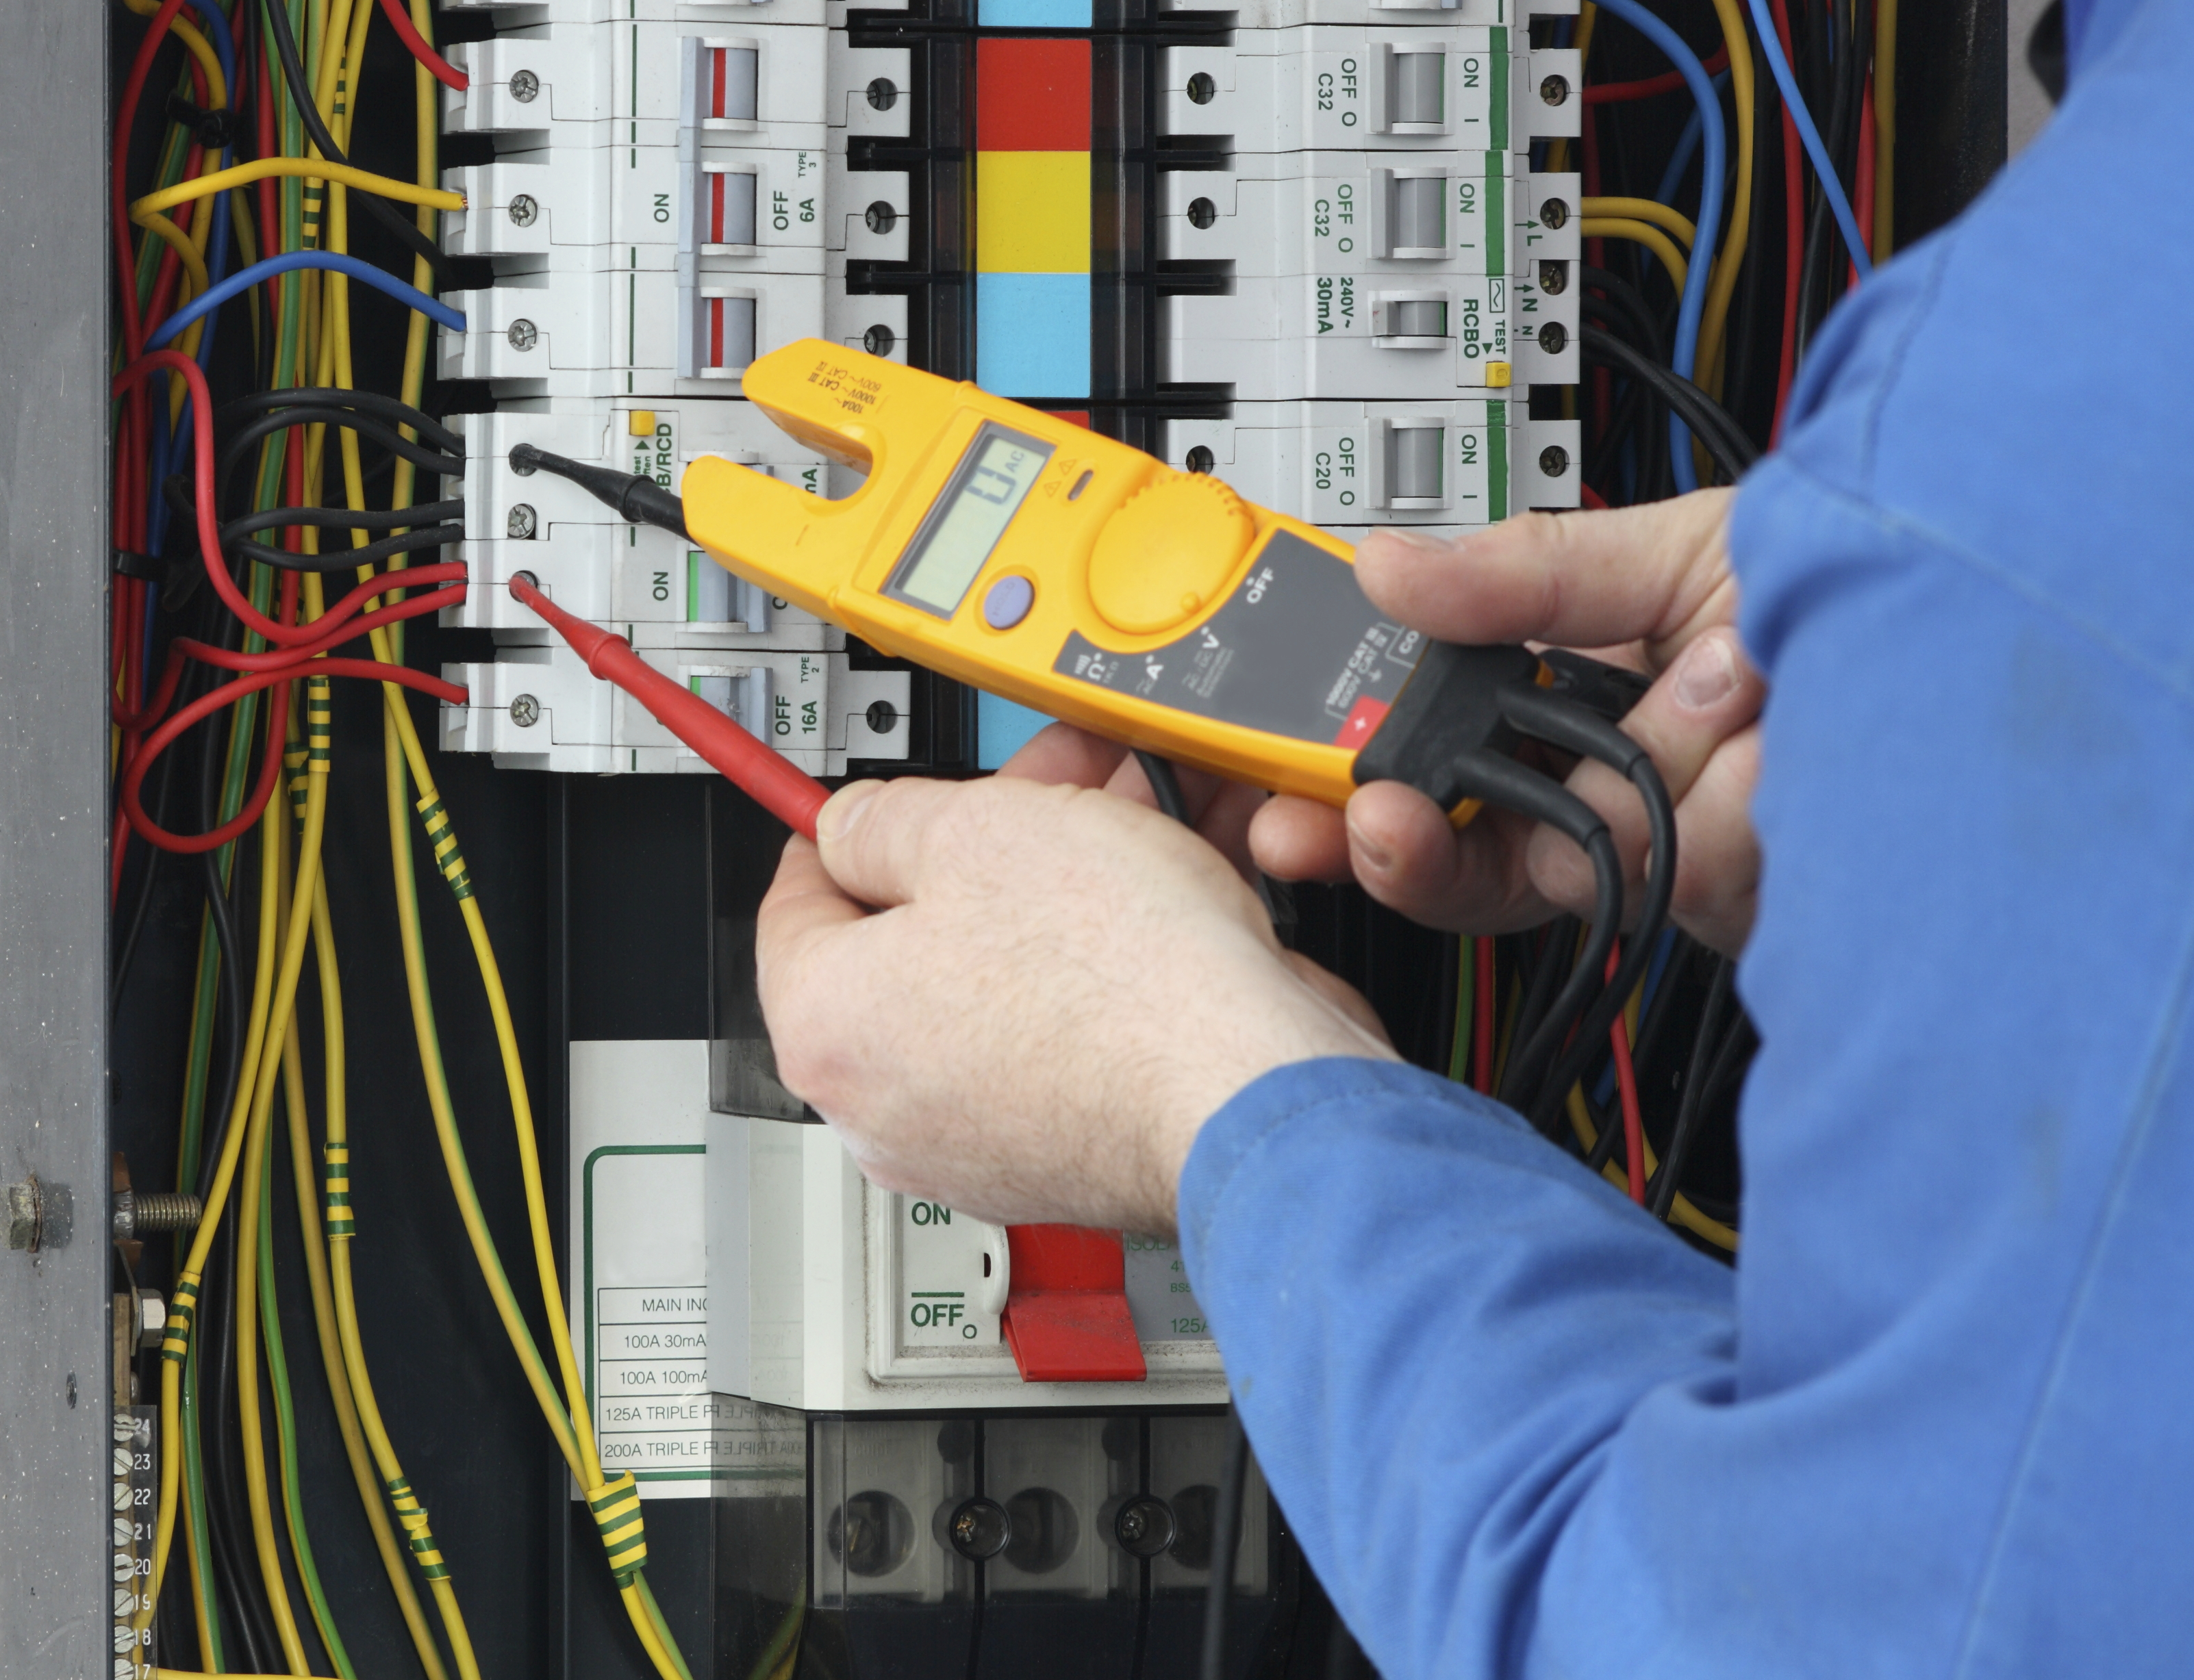 Electrical Wiring Inspections electrical wiring inspections electrical safety inspections excel electrical wiring at gsmportal.co